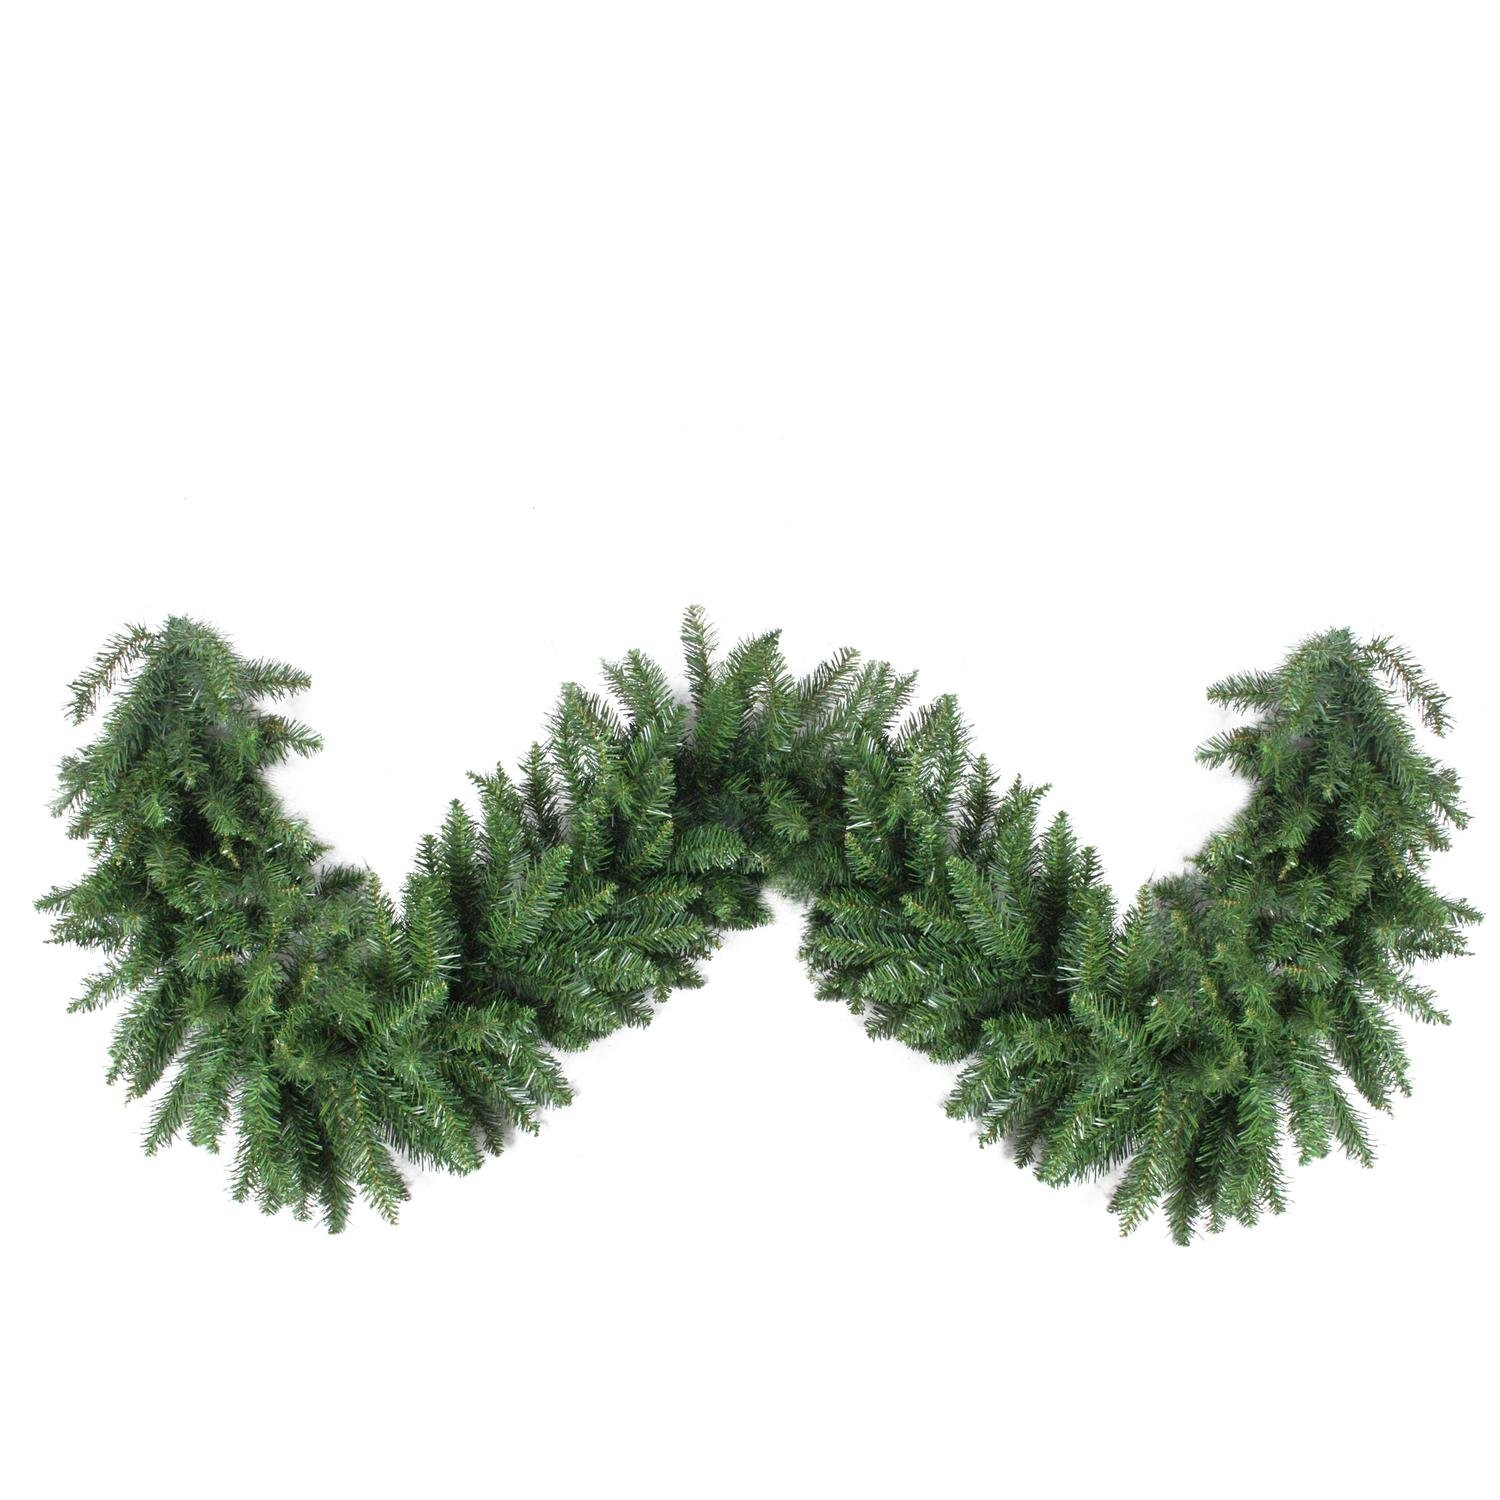 Northlight 50' x 16'' Buffalo Fir Commercial Length Artificial Christmas Garland-Unlit, Green